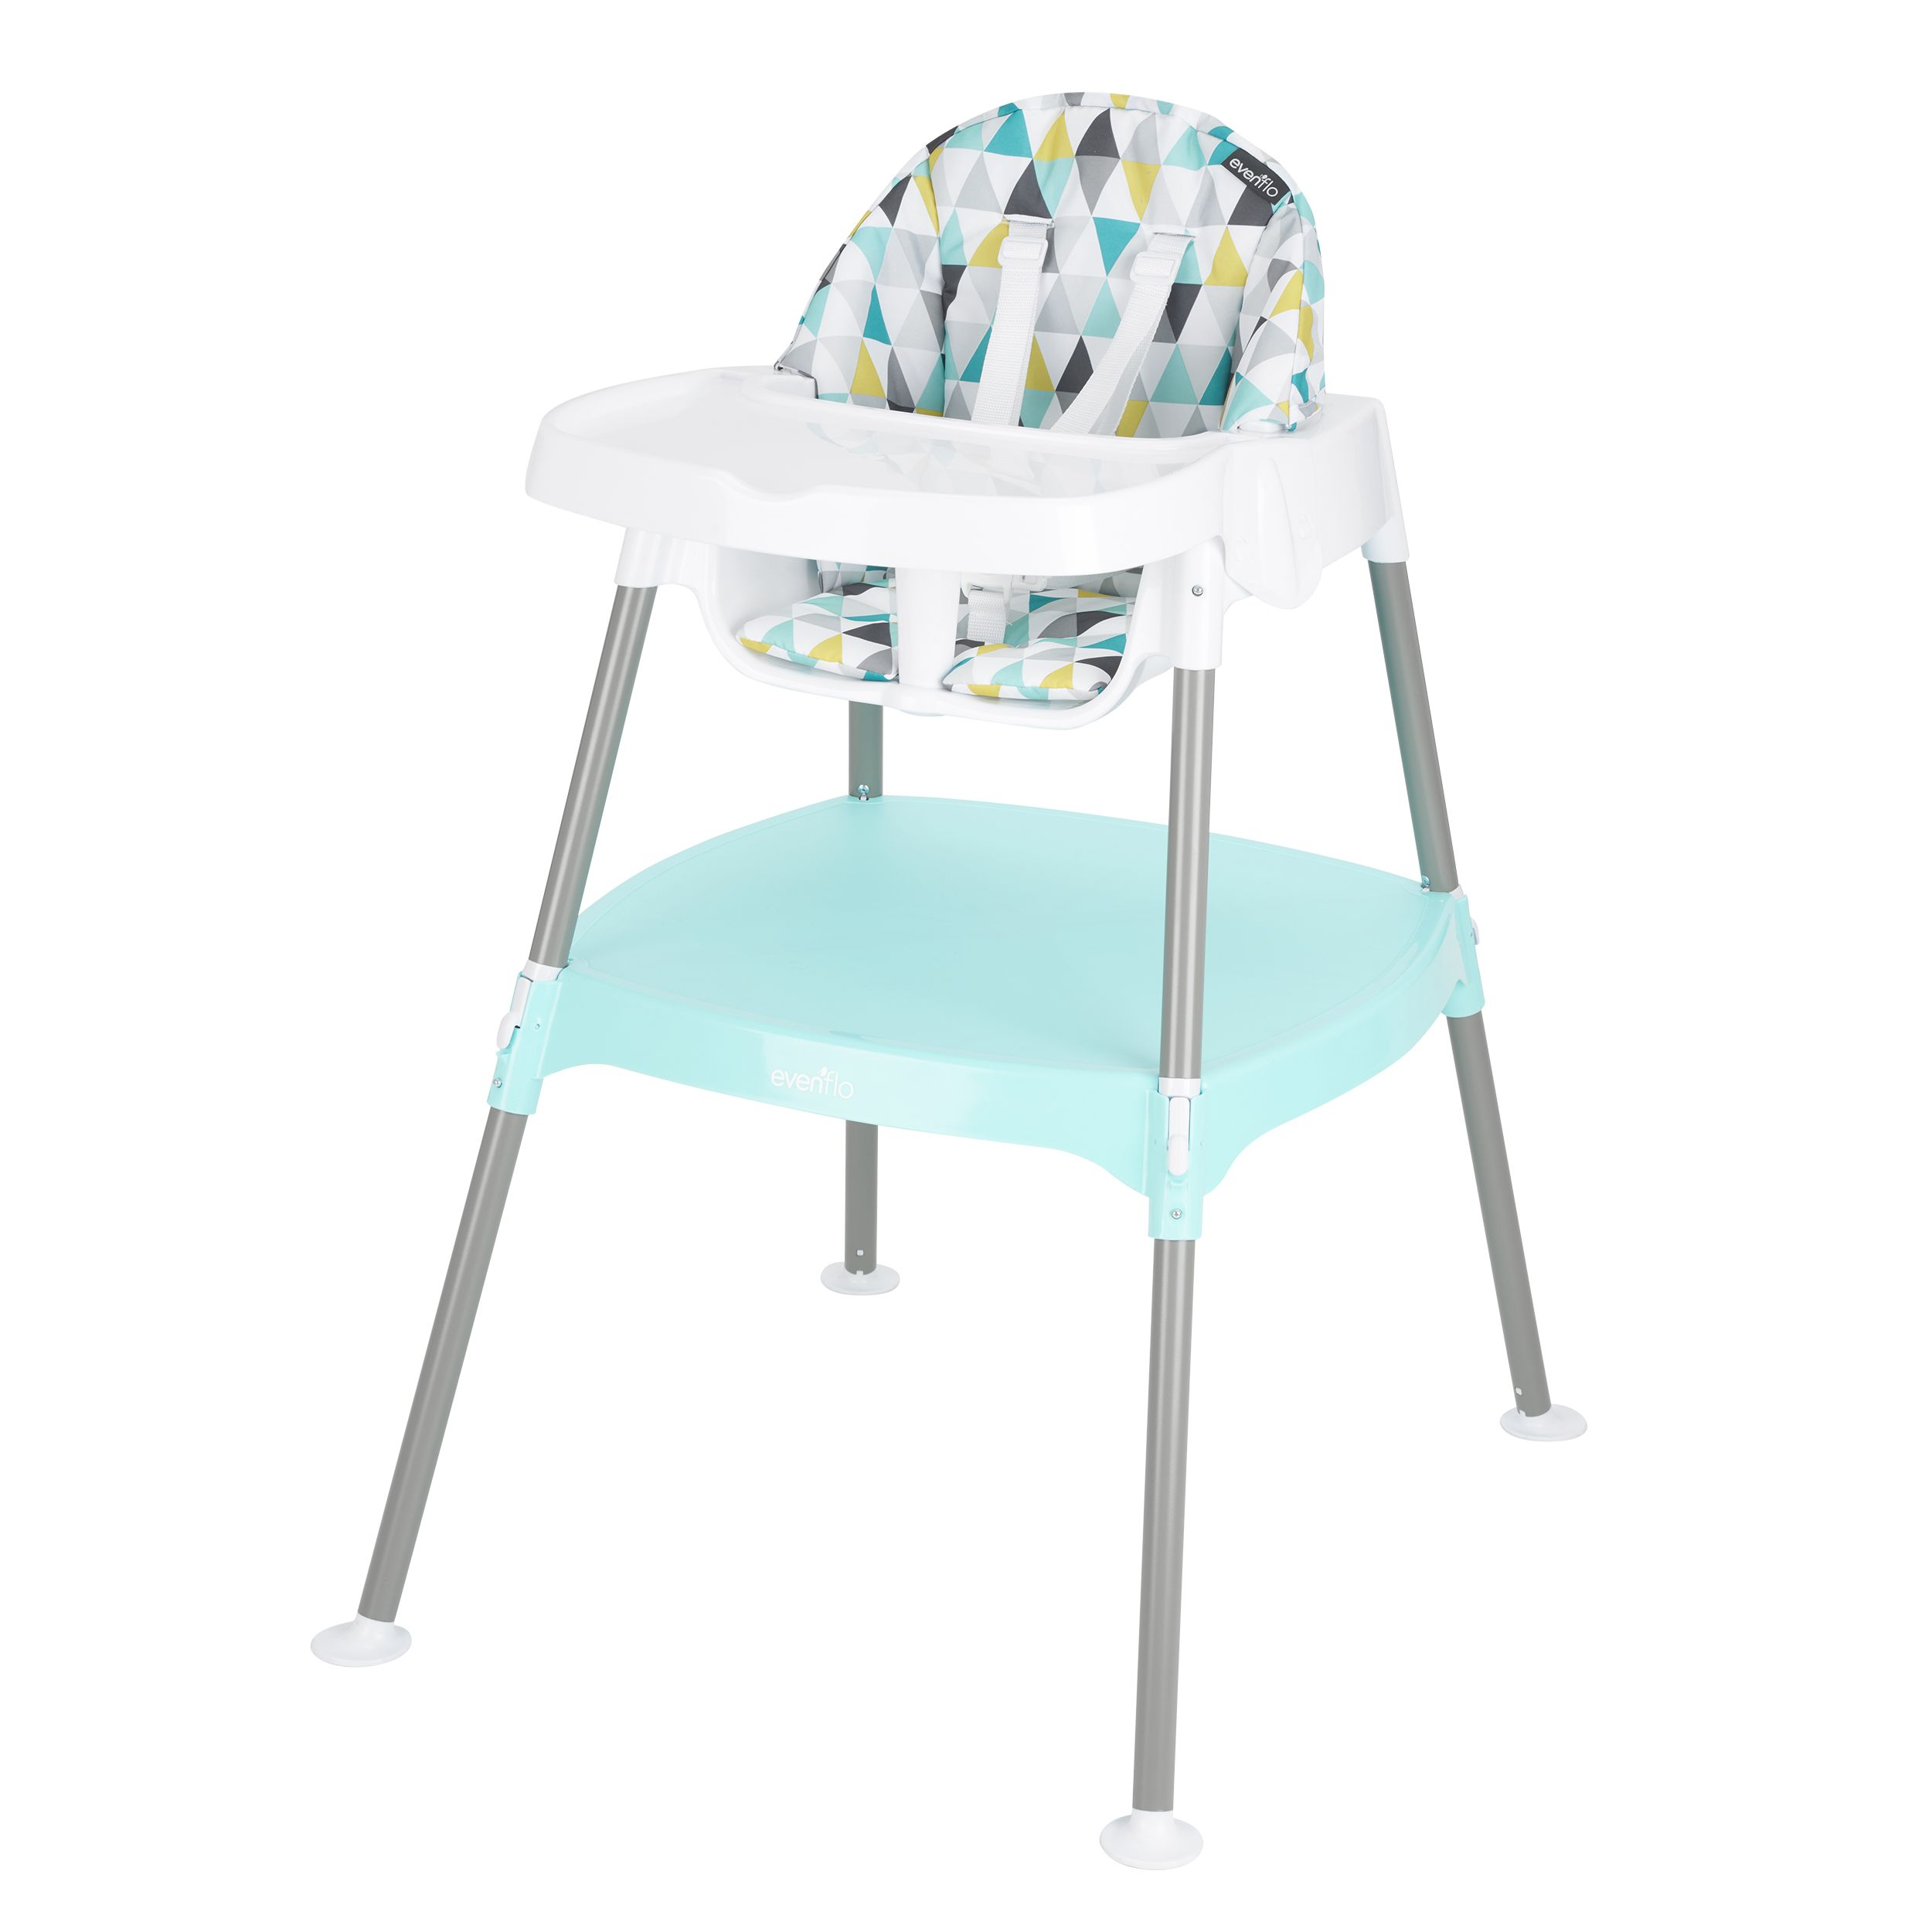 Baby in 2020 Convertible high chair, High chair, Baby